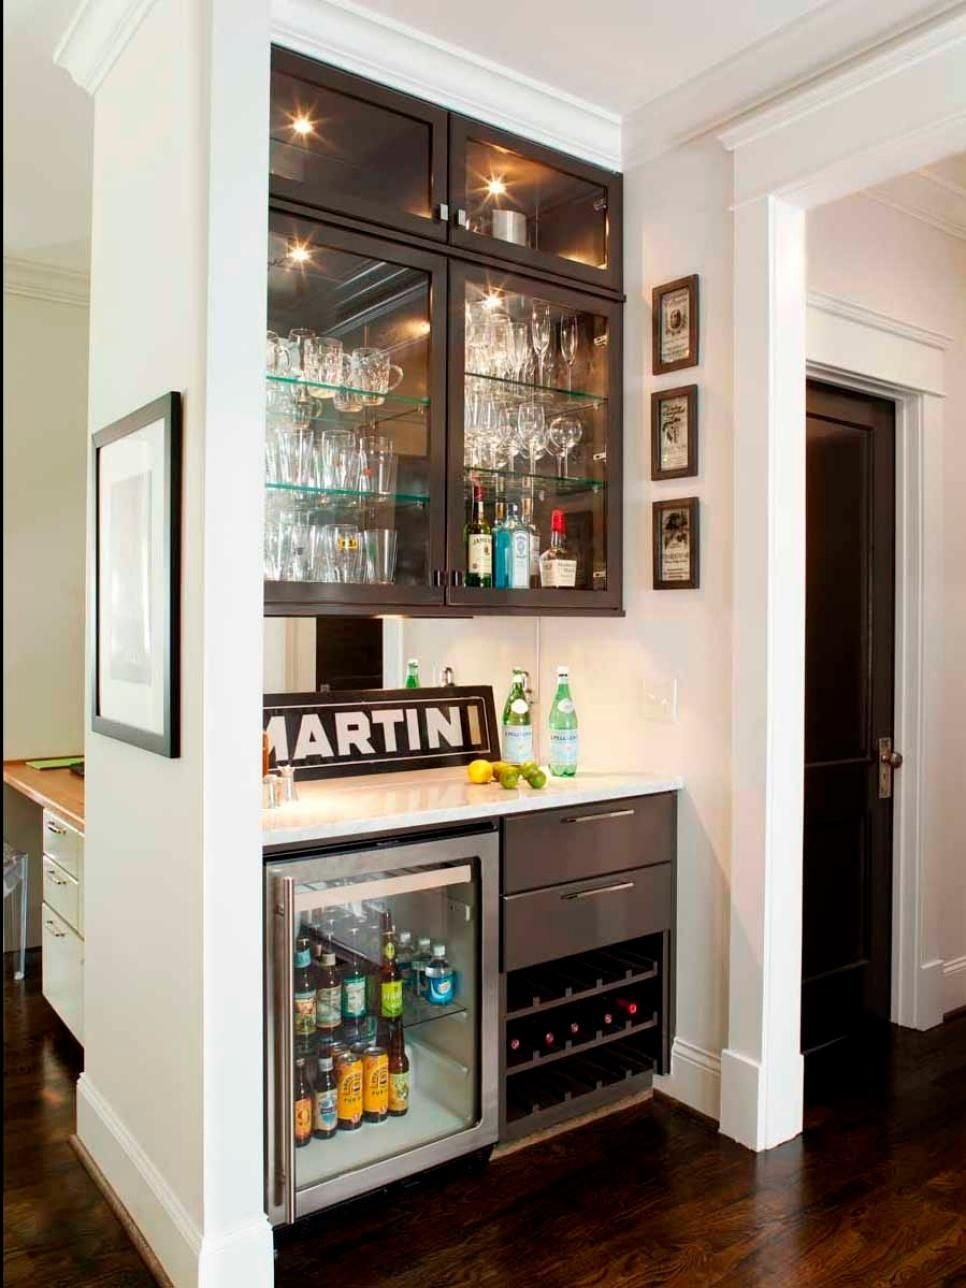 10 Elegant Basement Bar Ideas For Small Spaces 15 stylish small home bar ideas remodeling ideas hgtv and basements 2020